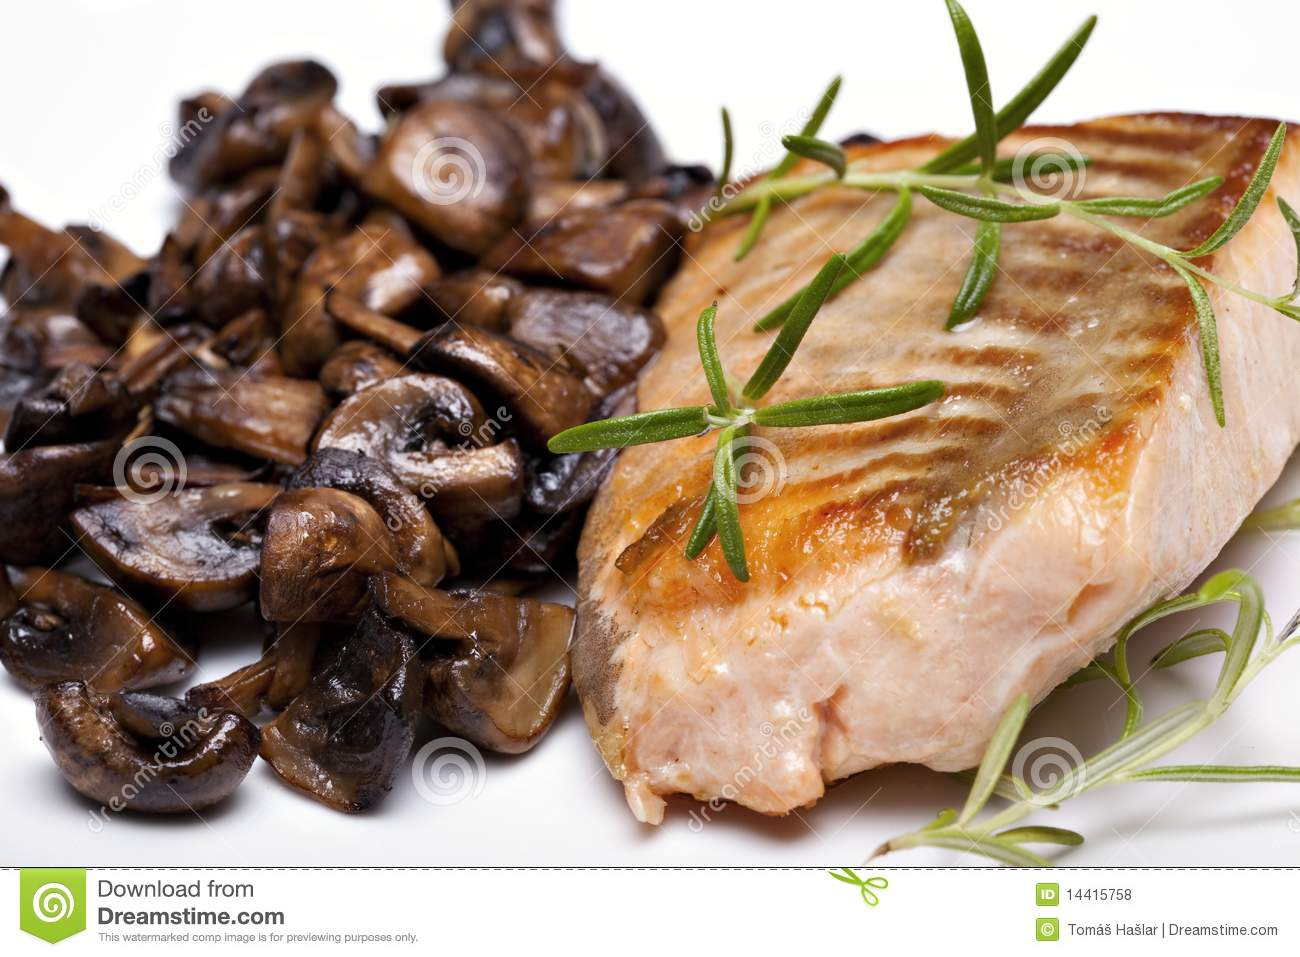 Grilled Fish, Salmon Steak Royalty Free Stock Photos - Image: 14415758